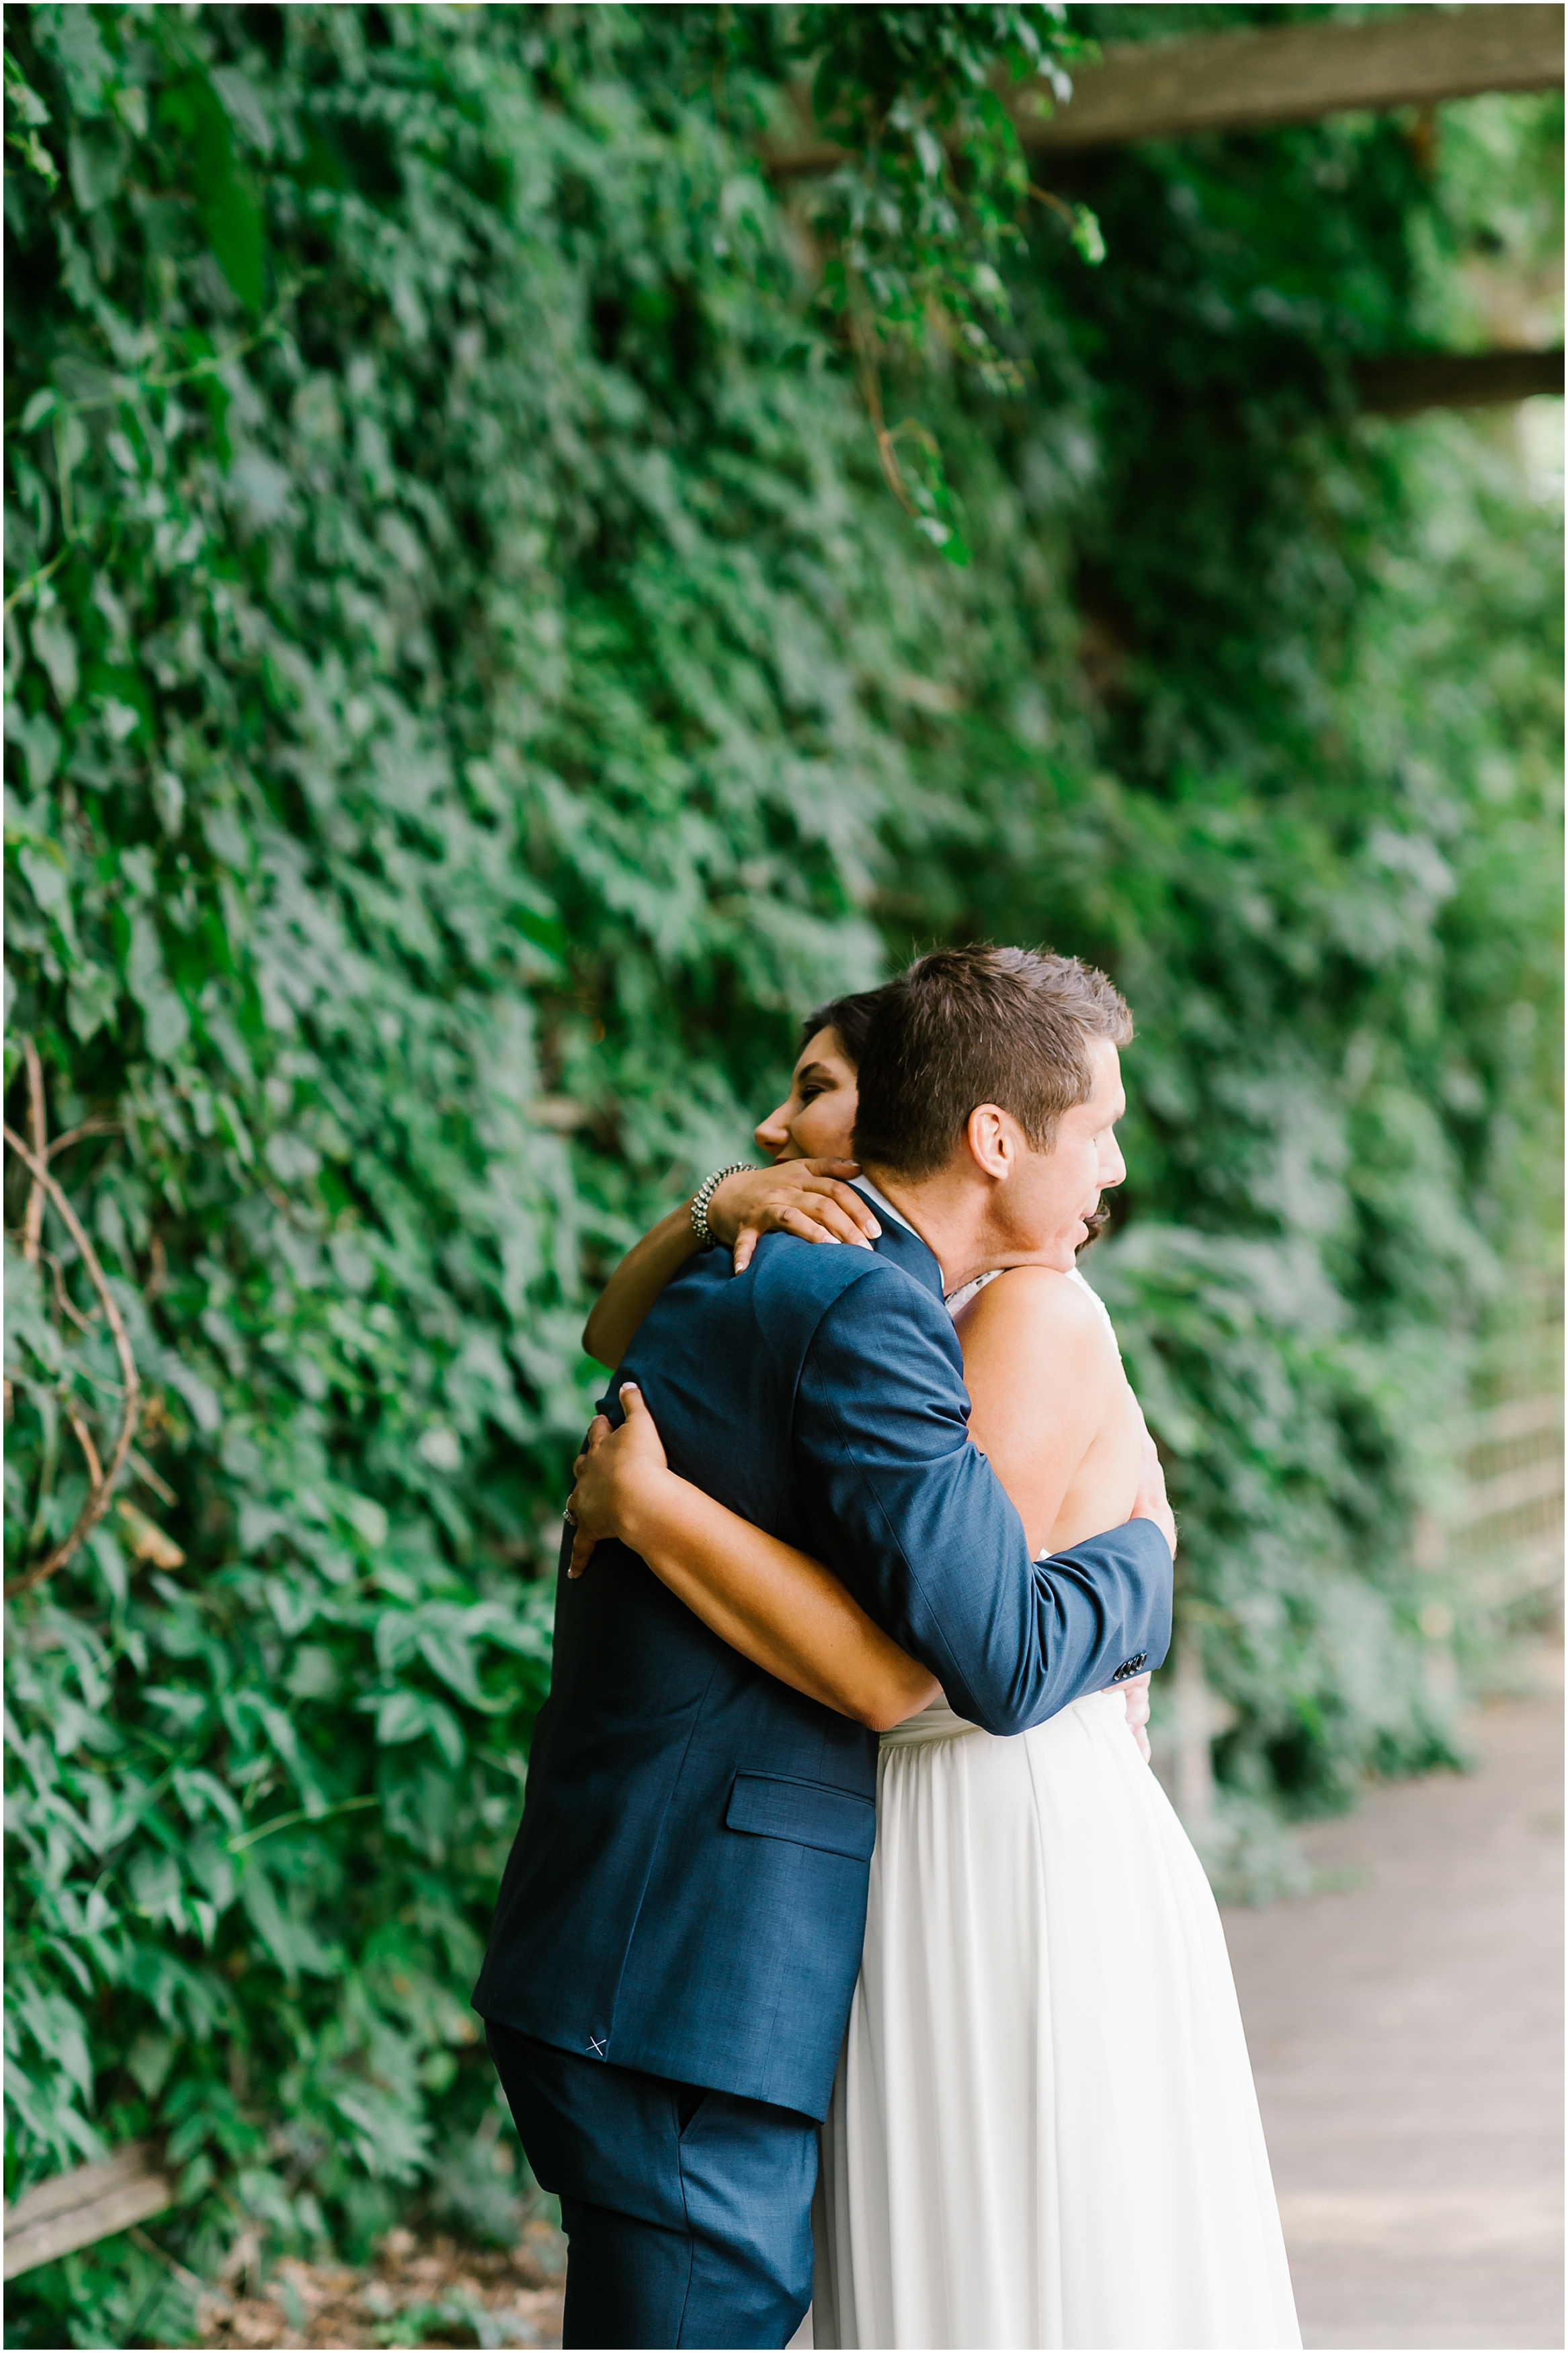 Rebecca Shehorn Photography Indianapolis Wedding Photographer Just Pop In Wedding_0627.jpg